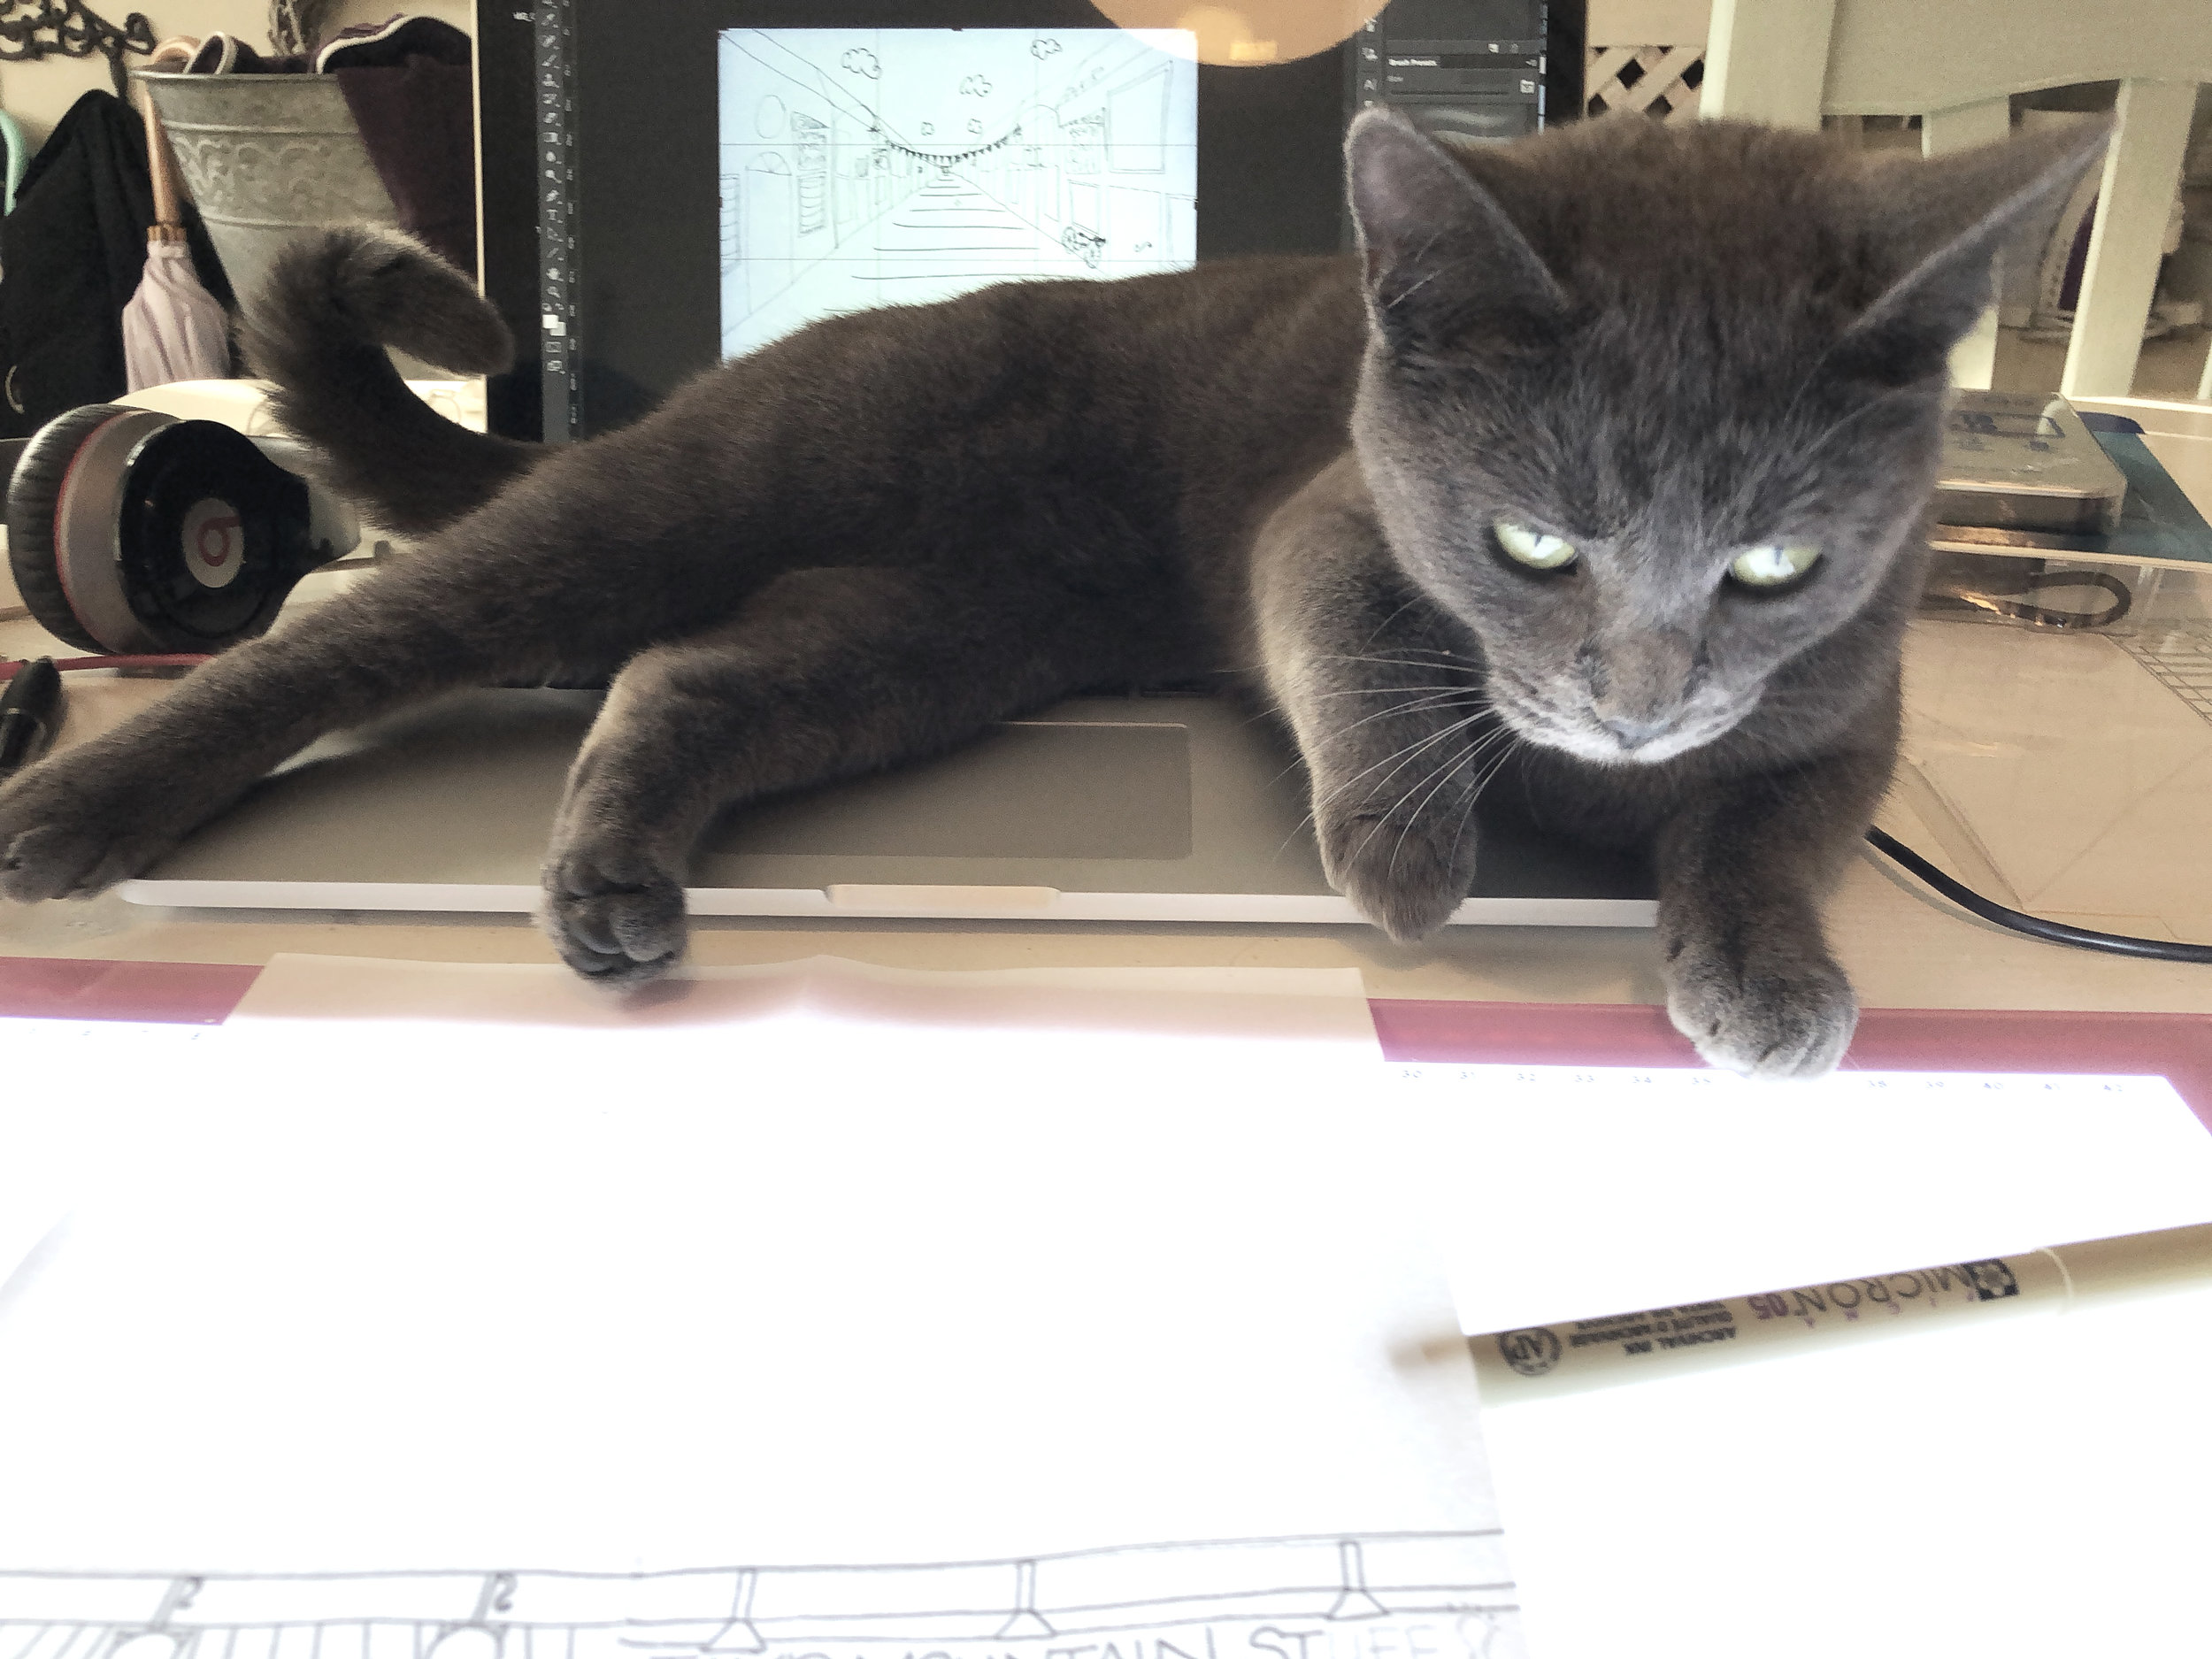 Dottie once again on the laptop | natalie palmer sutton | how to argue with a cat.JPG